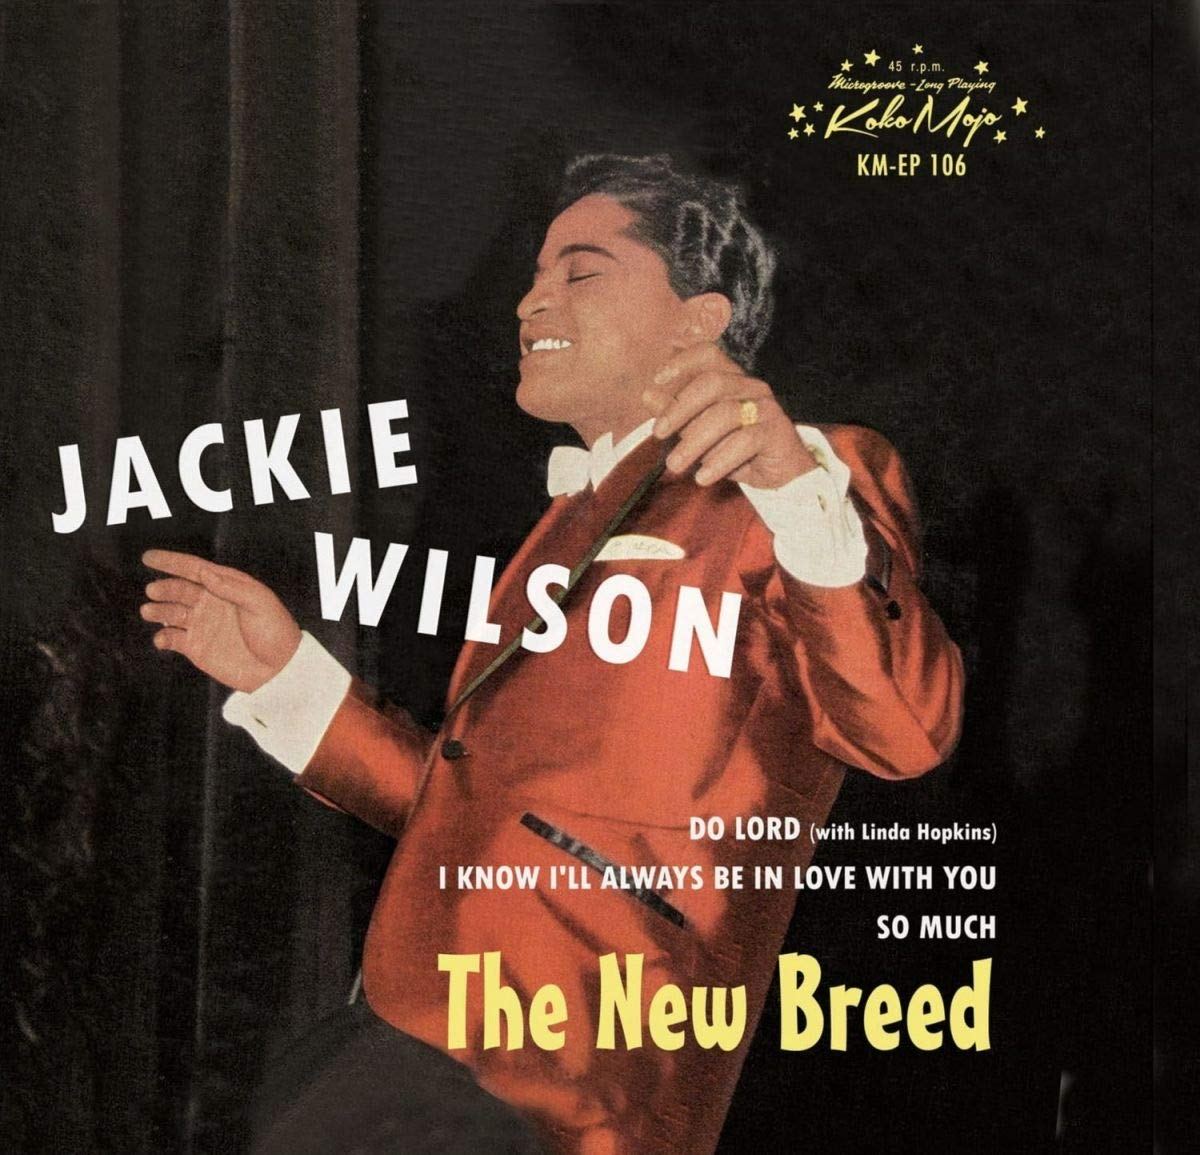 Jackie Wilson - The New Breed [7''] (limited to 500) - Urban Vinyl | Records, Headphones, and more.